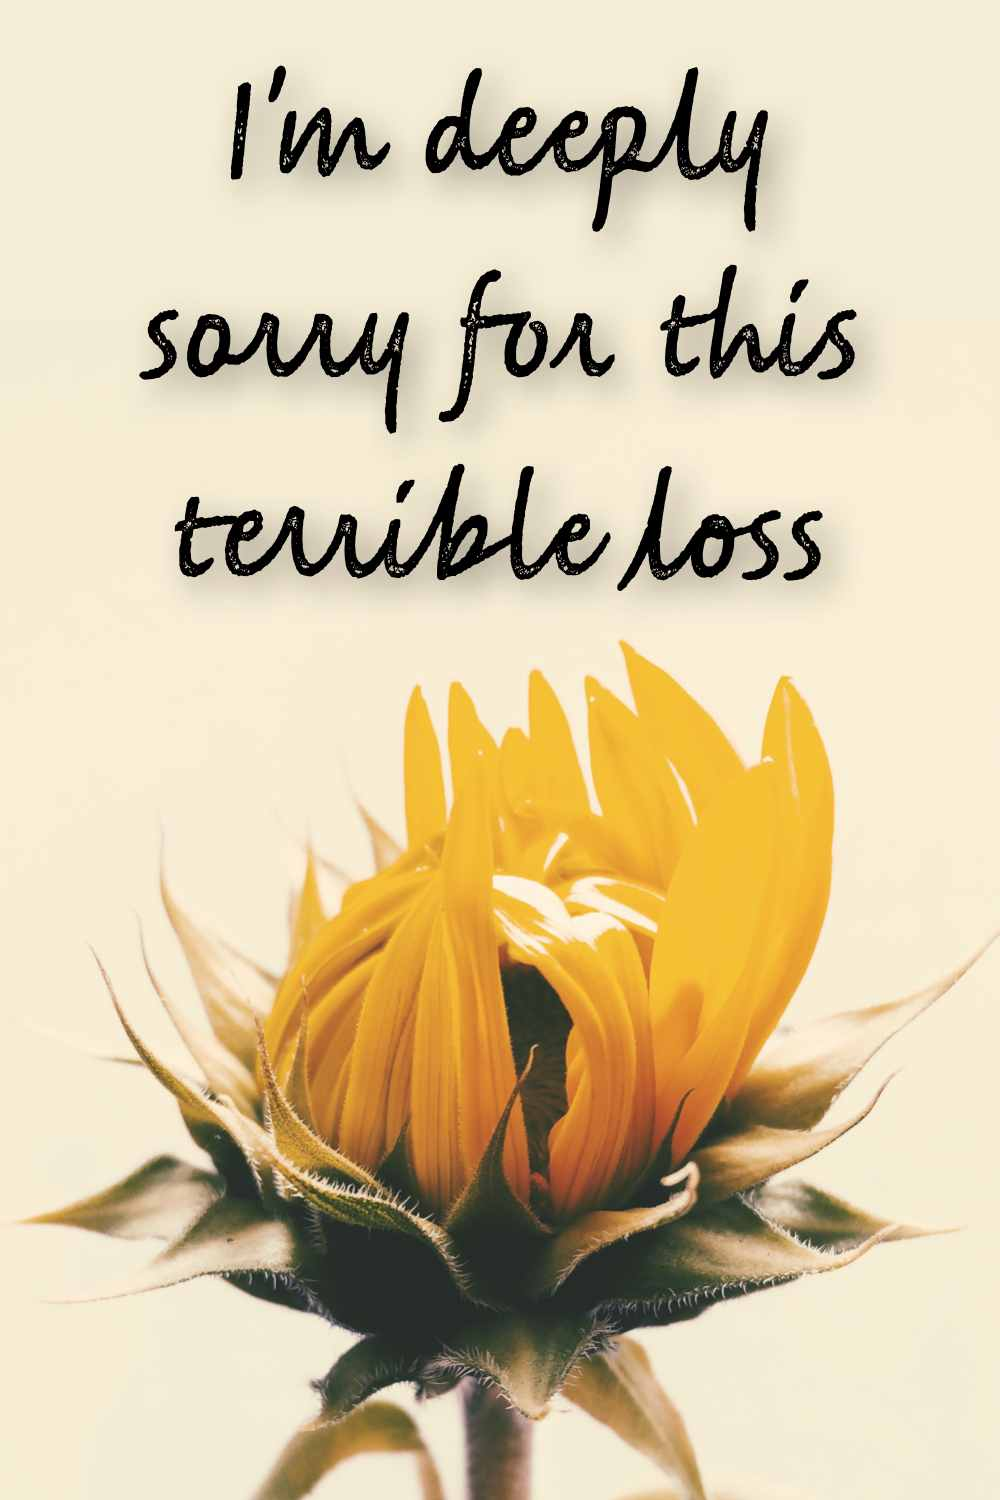 I am deeply sorry for your terrible loss quote